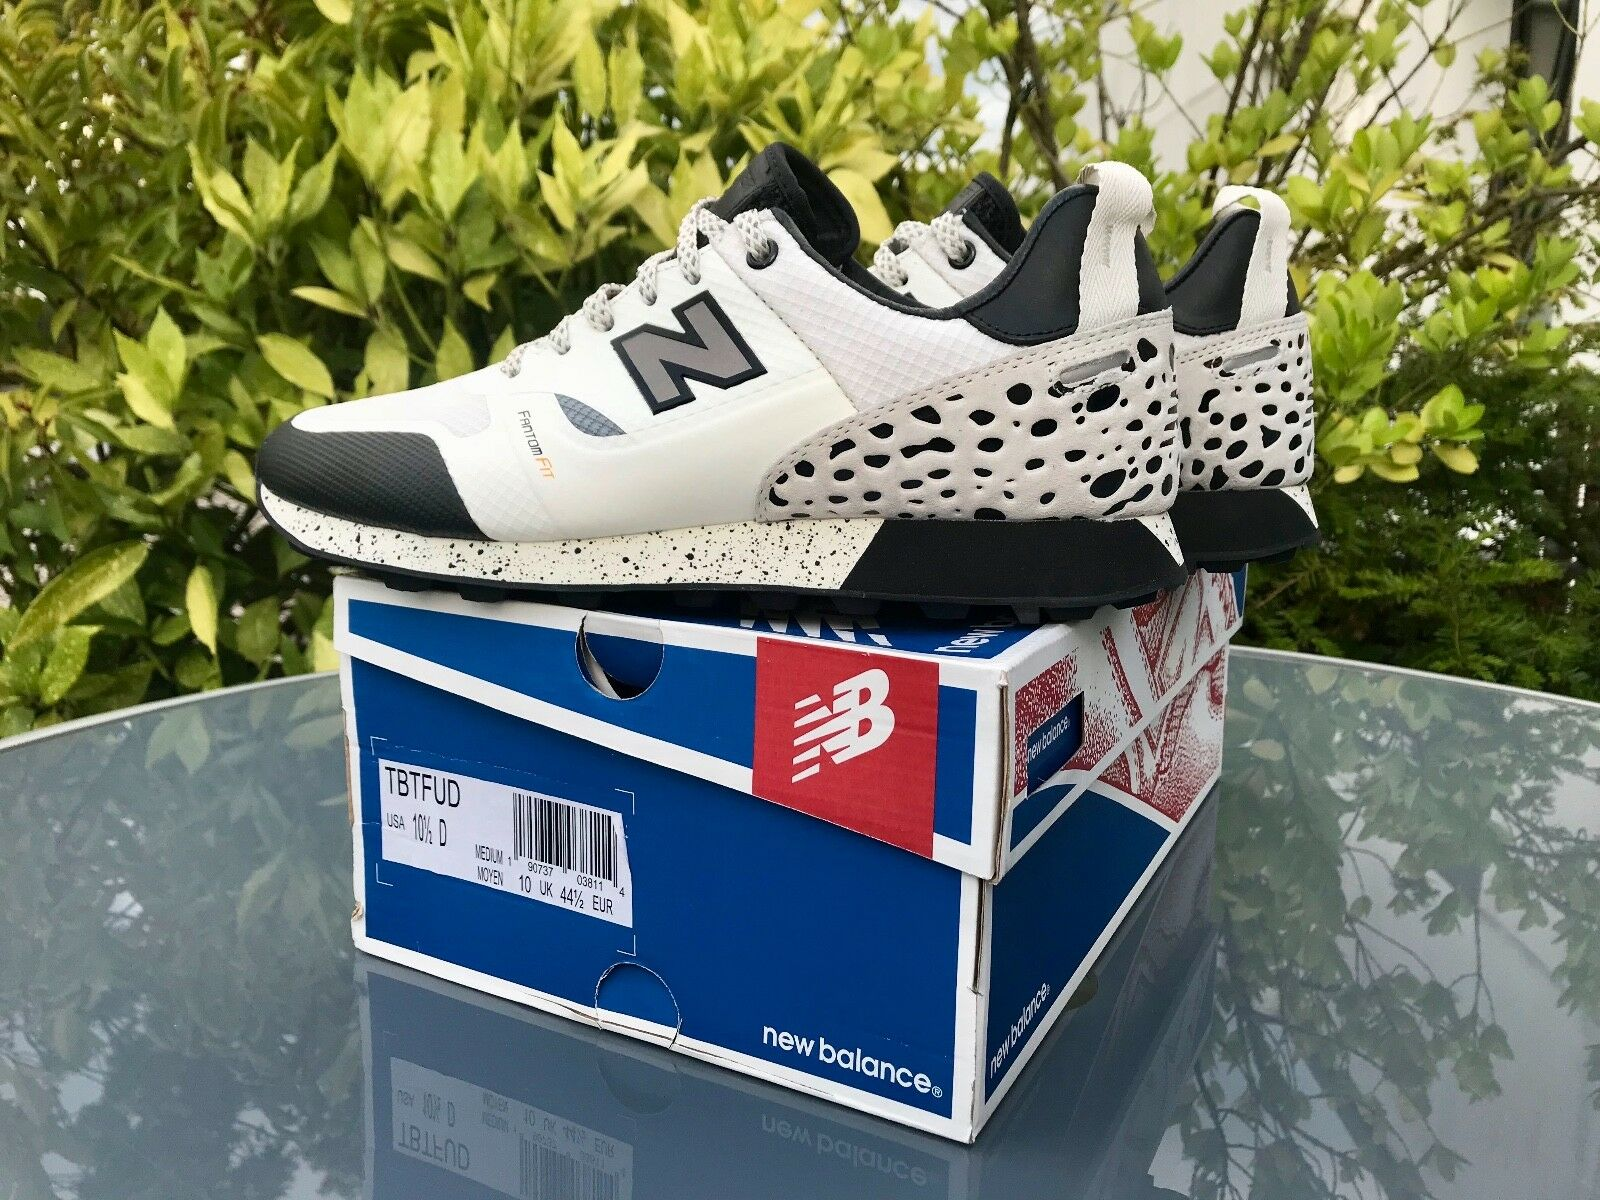 Adidas Originals ZX Flux Baskets Taille Taille Baskets Brand New in Box UE 40 2/3 Gris f1275e